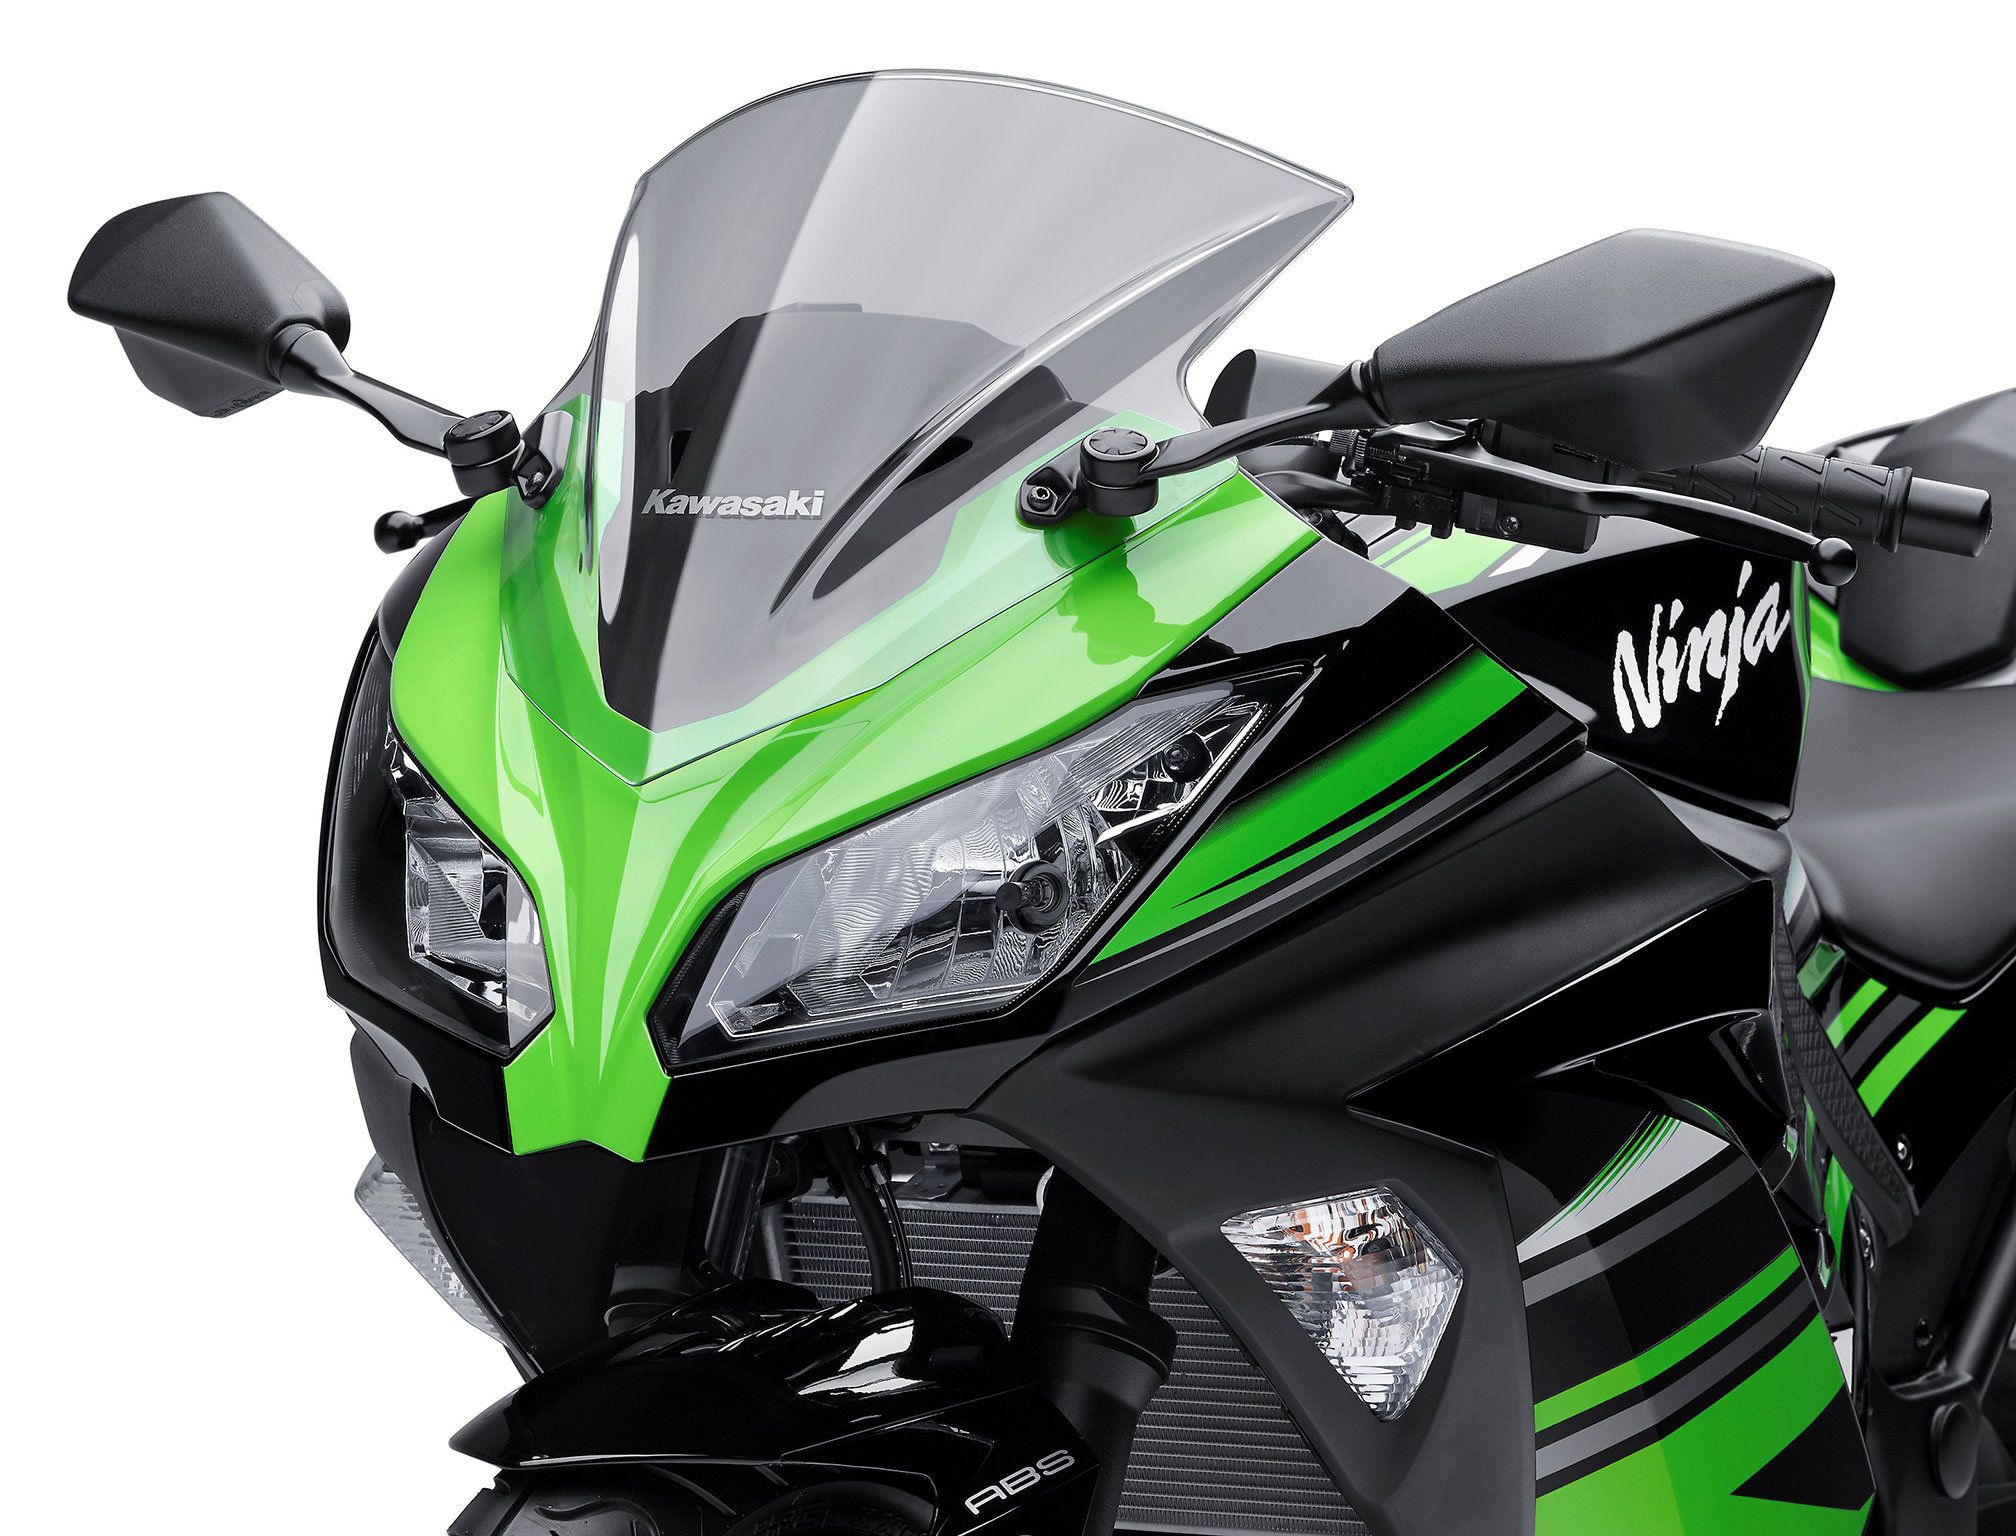 2016 kawasaki ninja 300 abs krt edition review